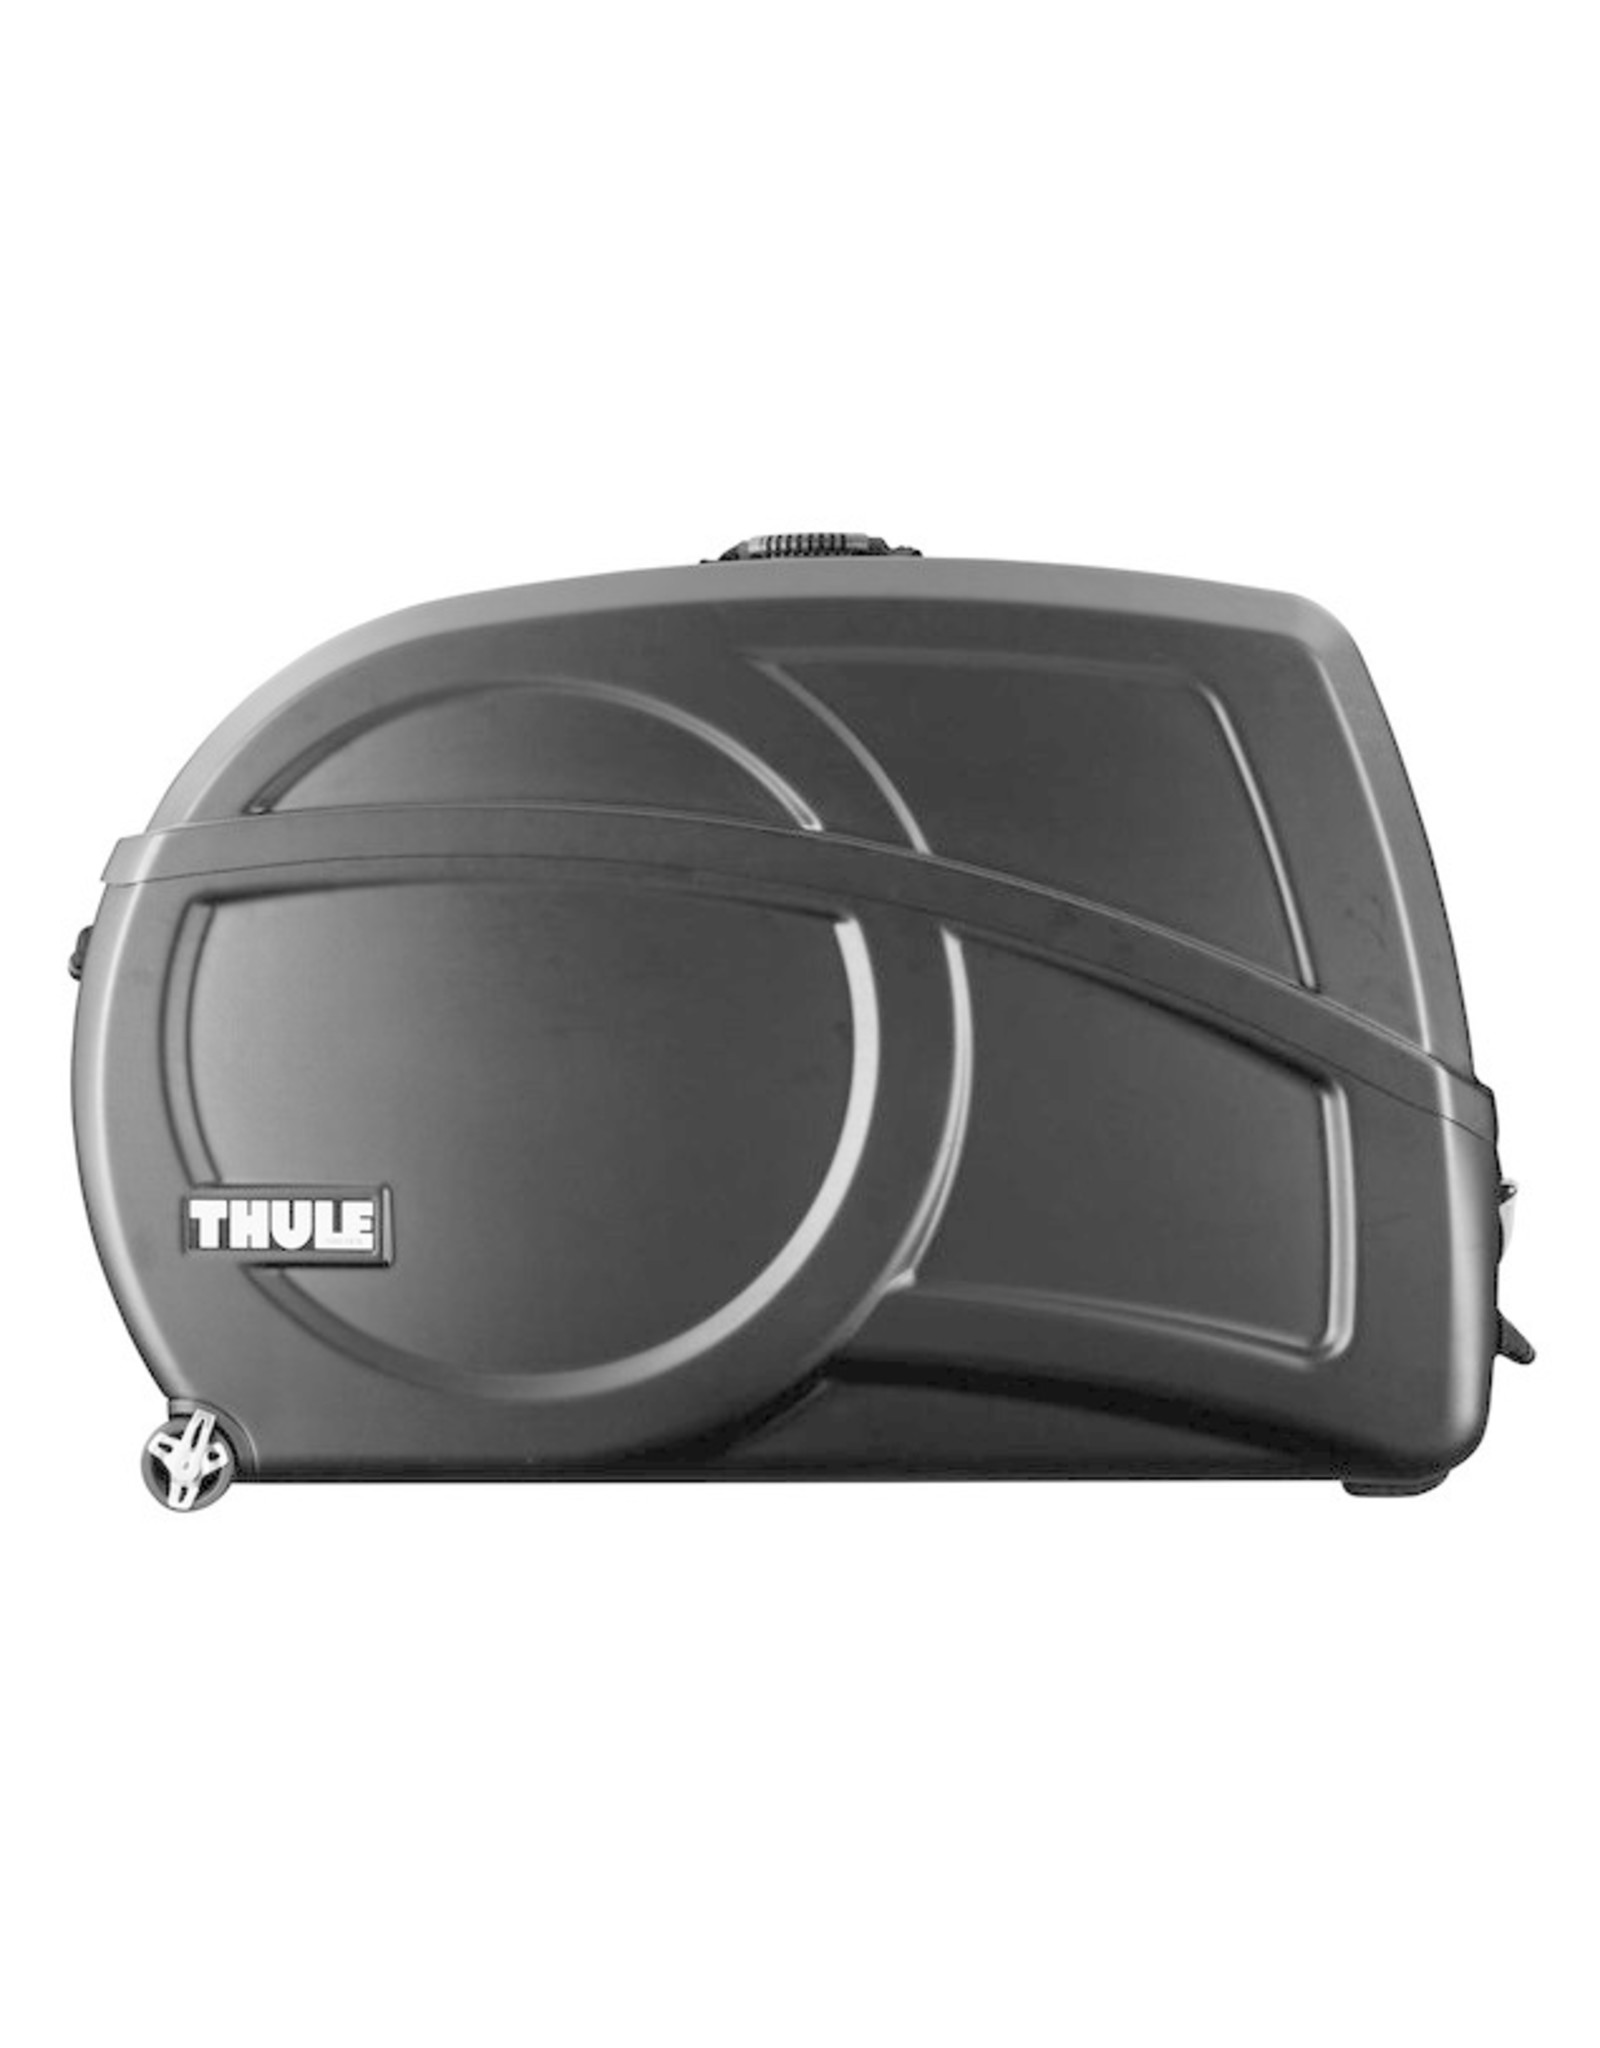 Thule Thule Round Trip Transition